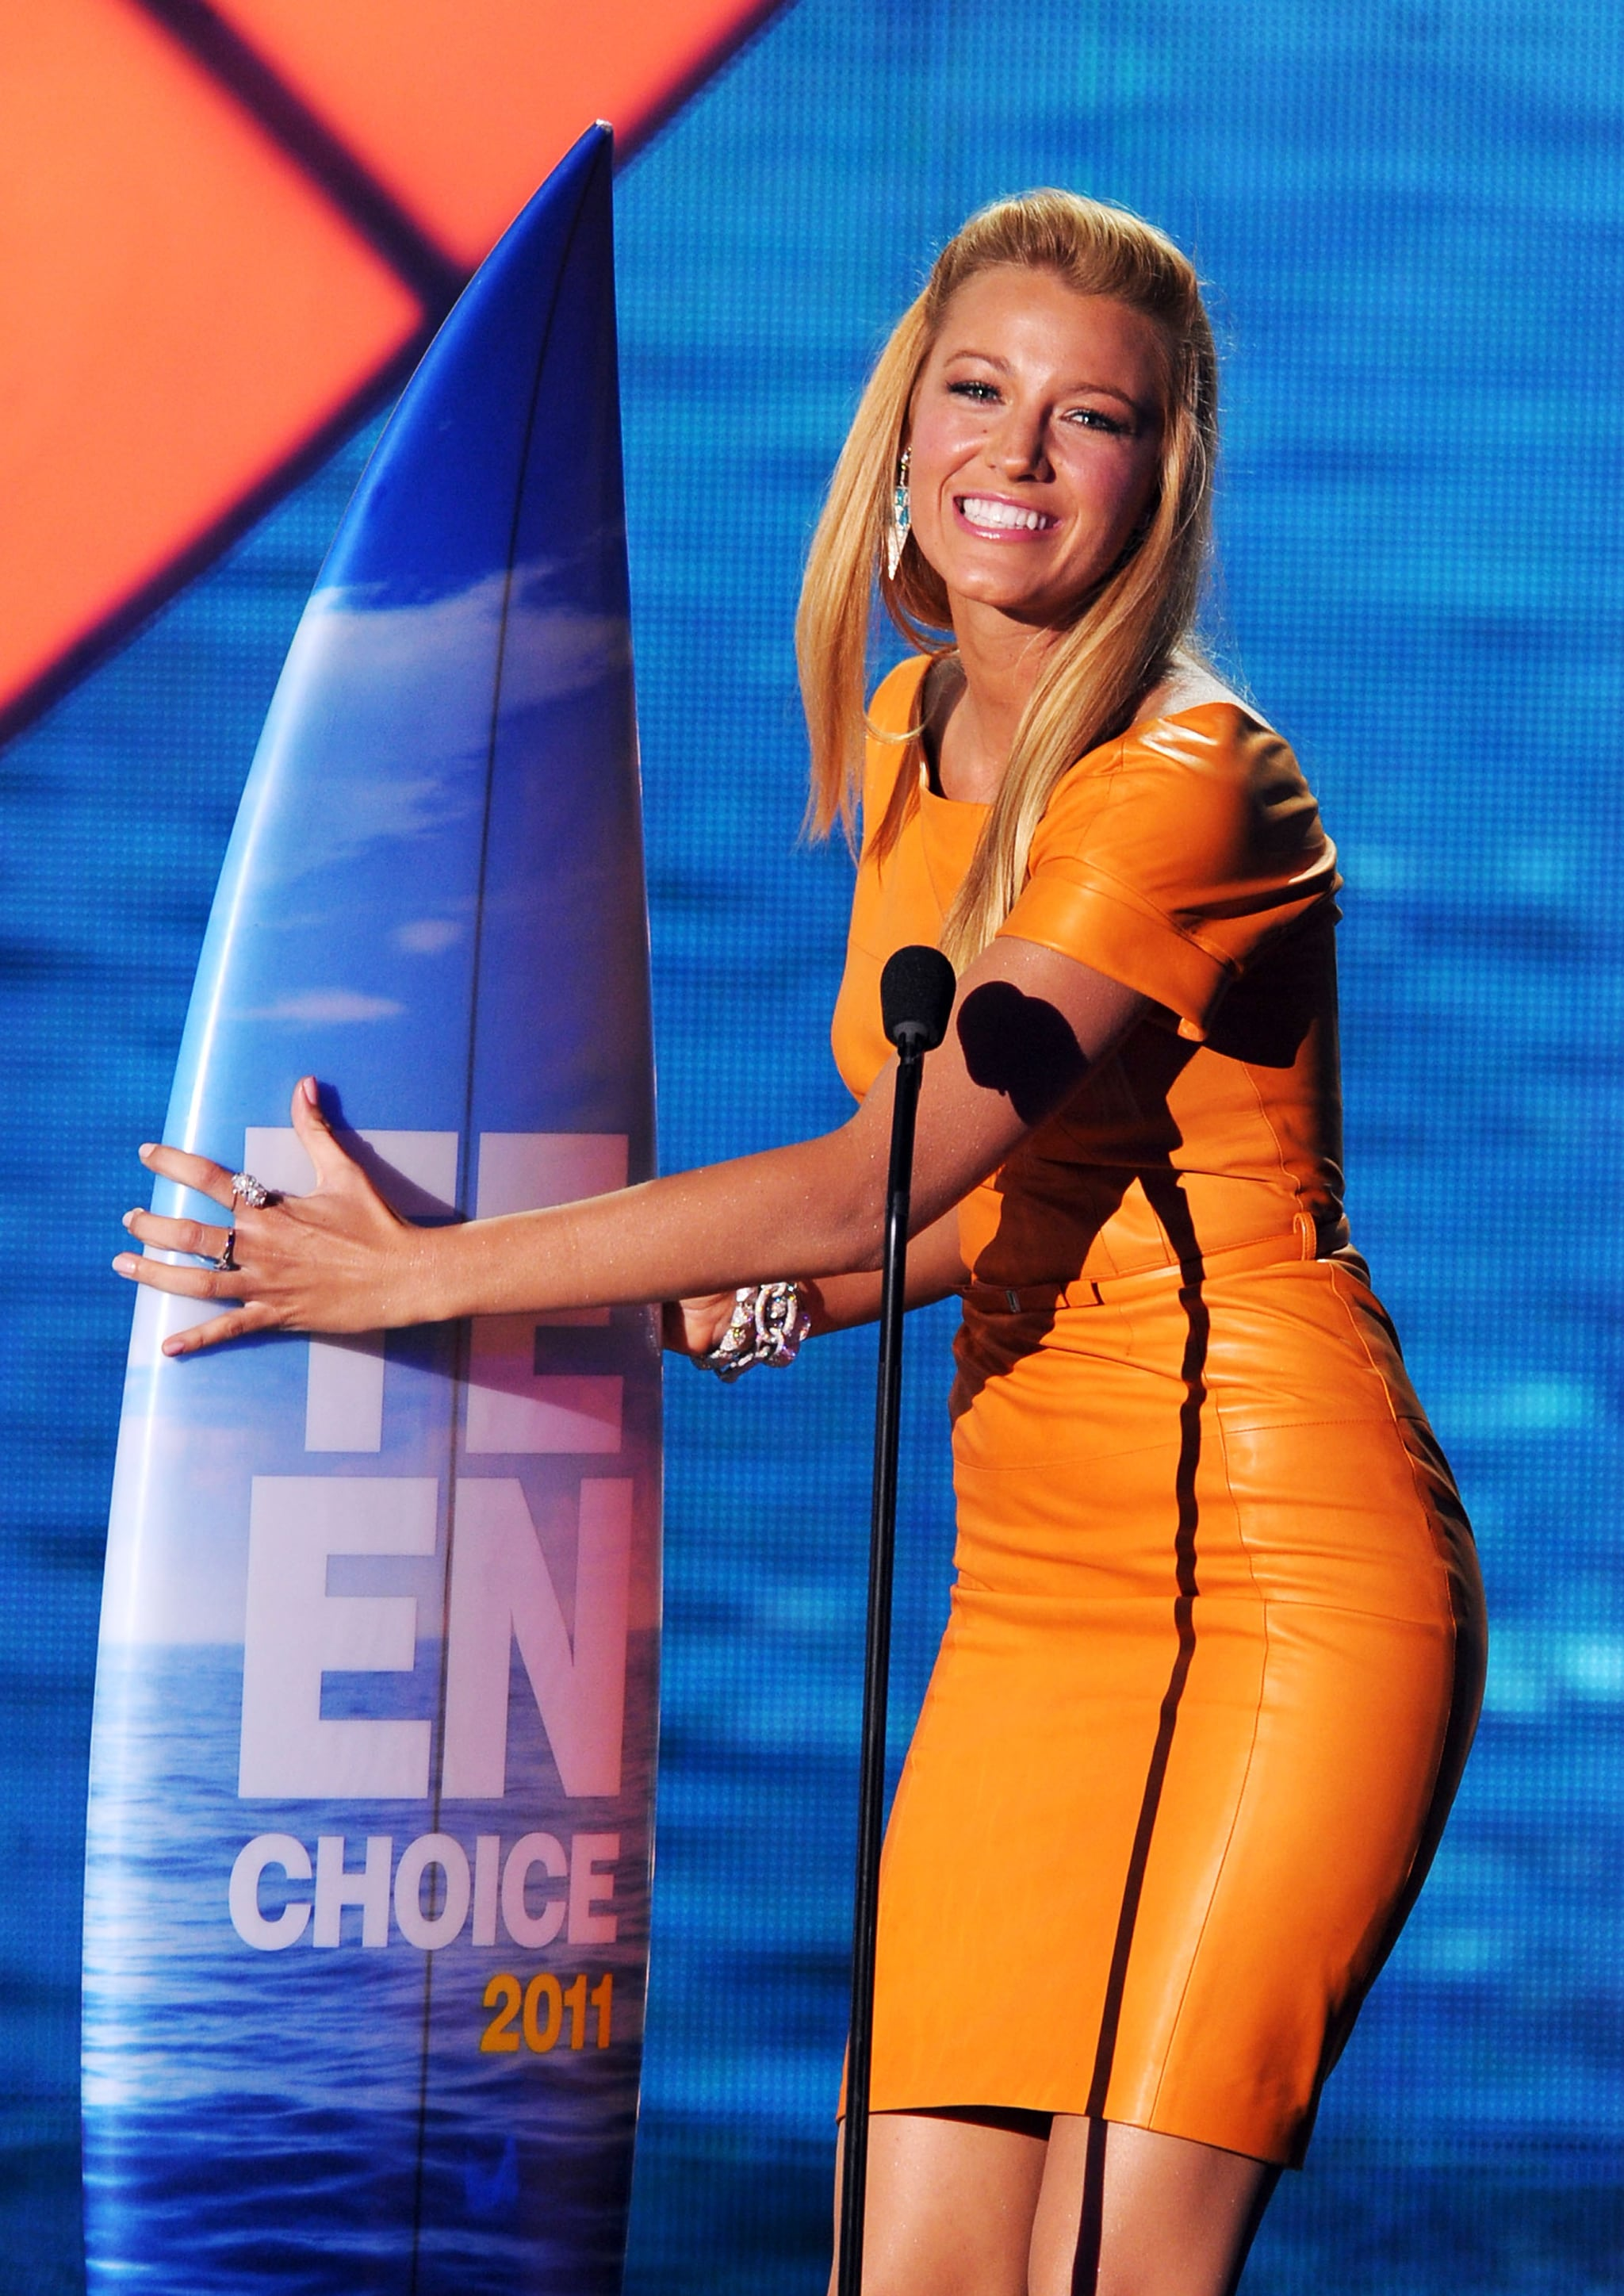 Blake lively teen choice